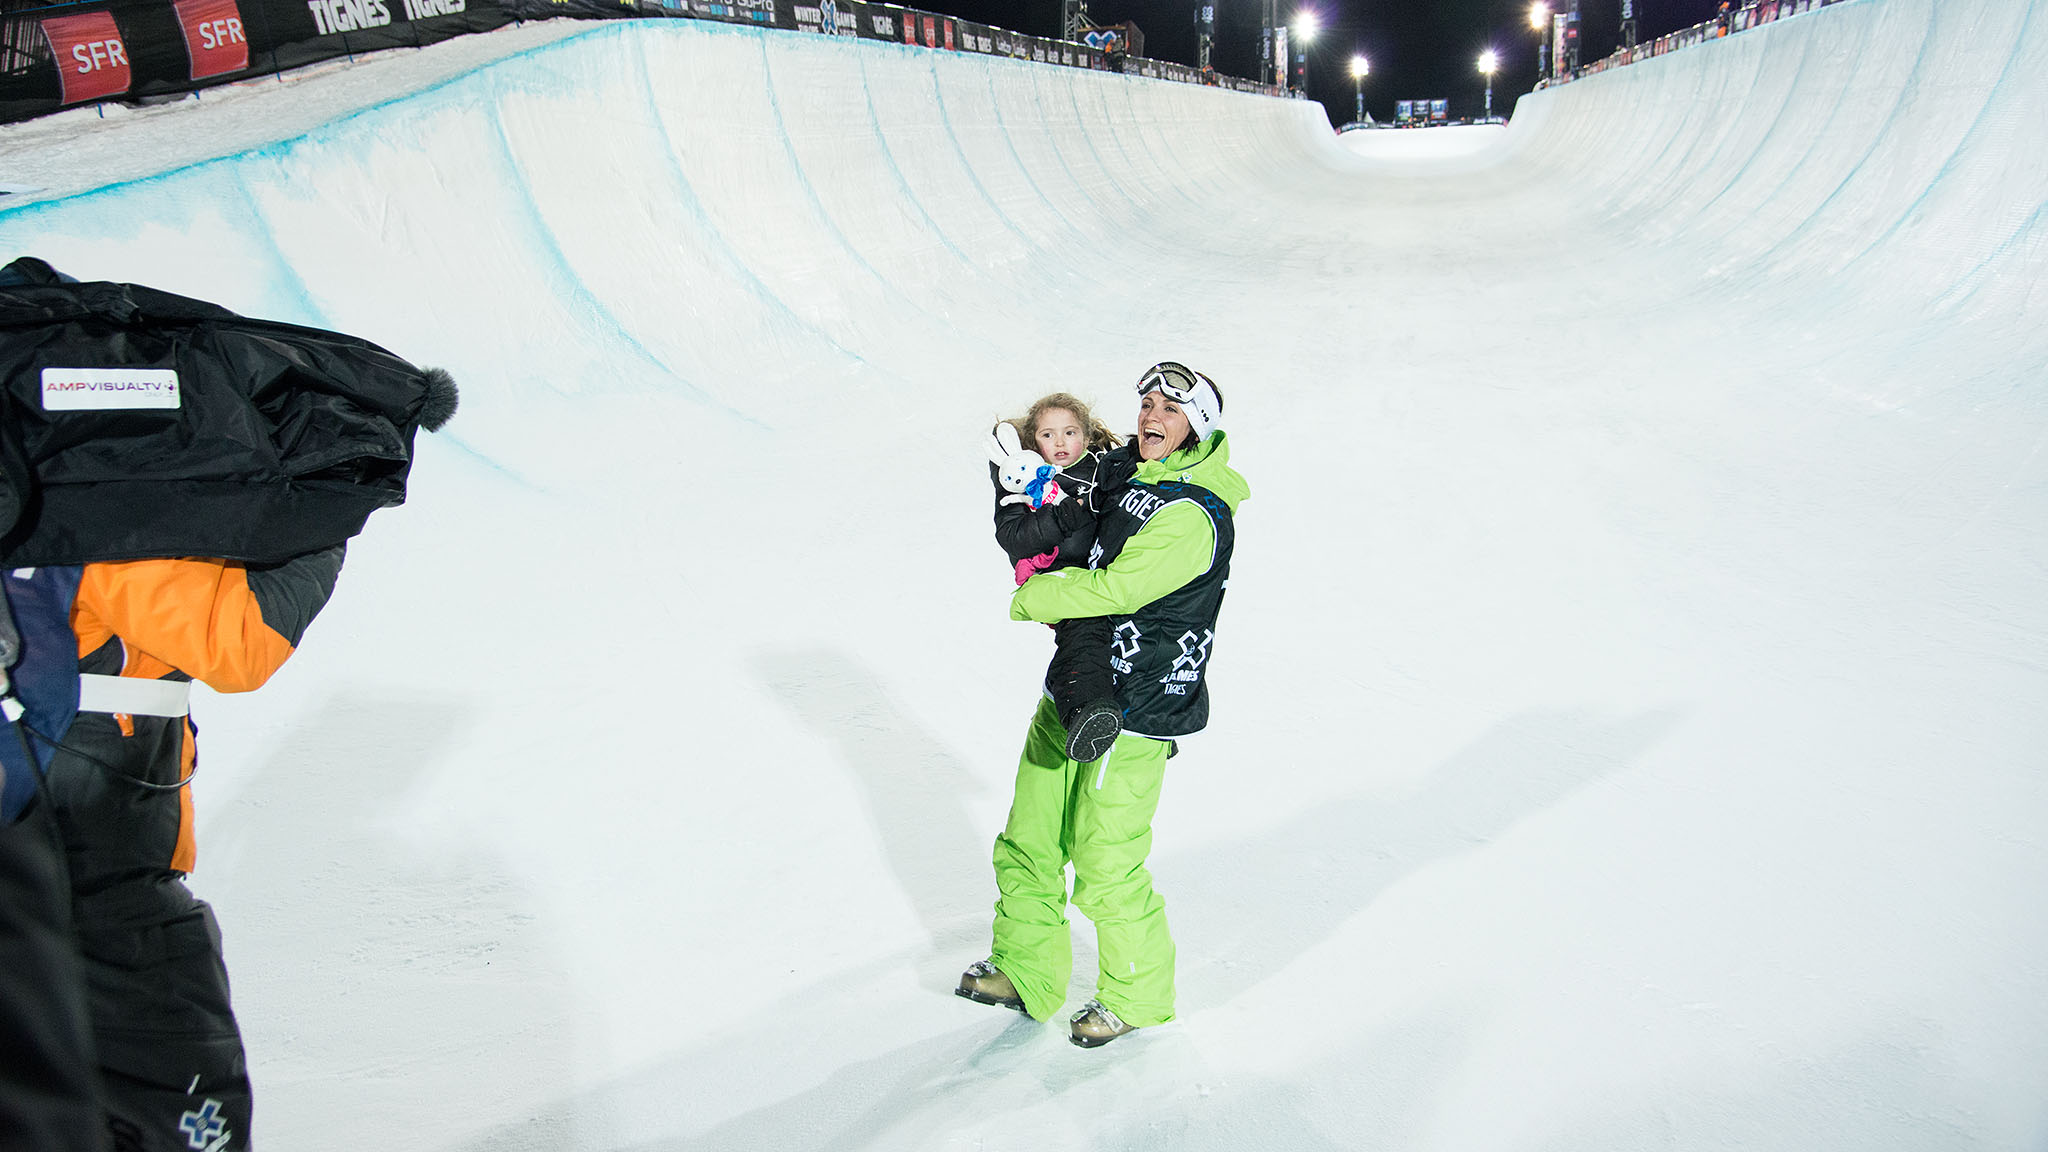 France's Marie Martinod and her daughter in the X Games Tignes SuperPipe.